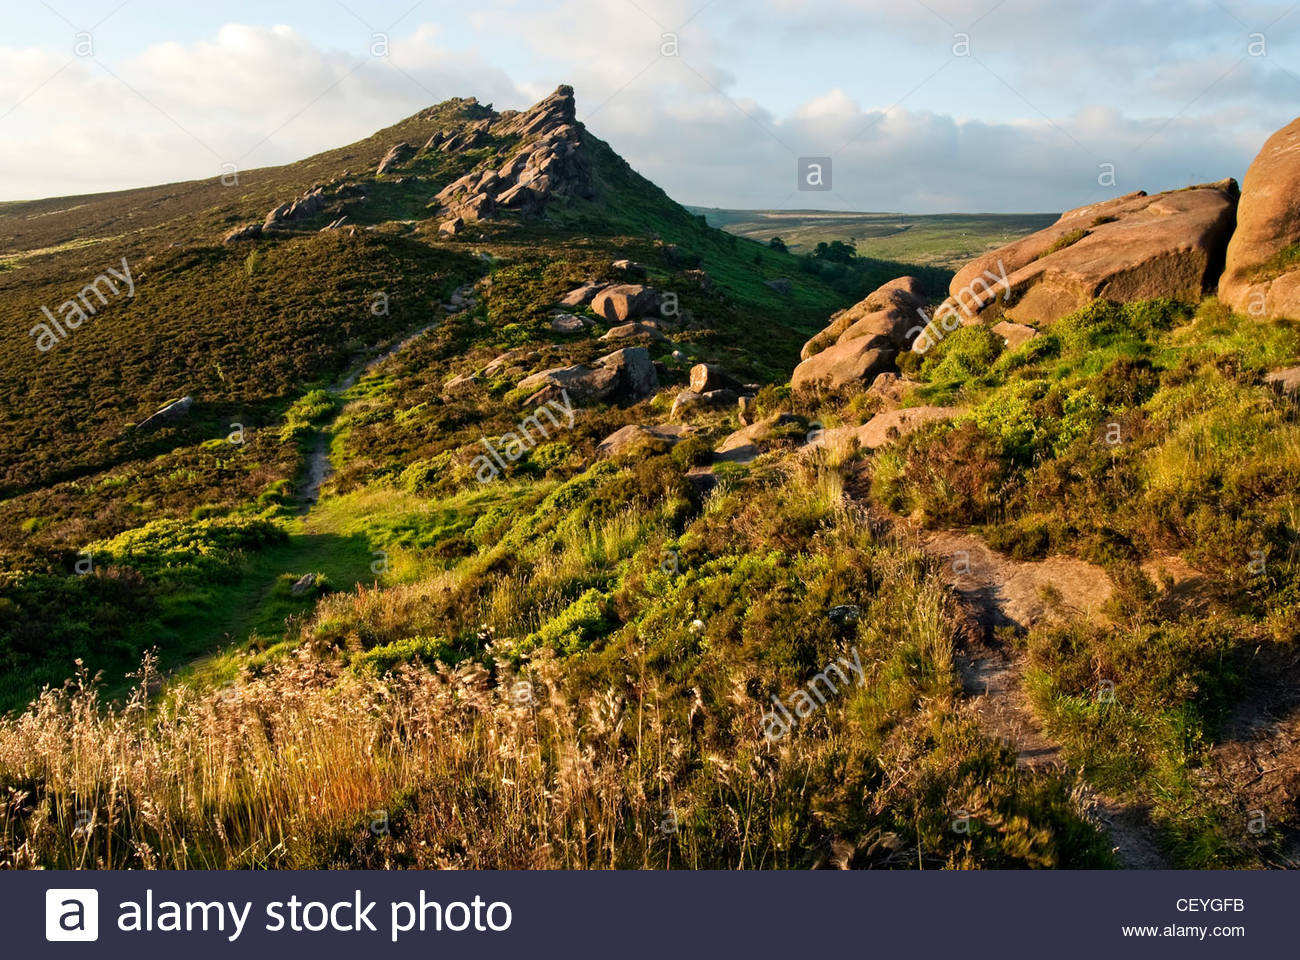 Rock Formation near the Roaches, near Tittesworth Reservoir Peak District of National Park, England. - Stock Image